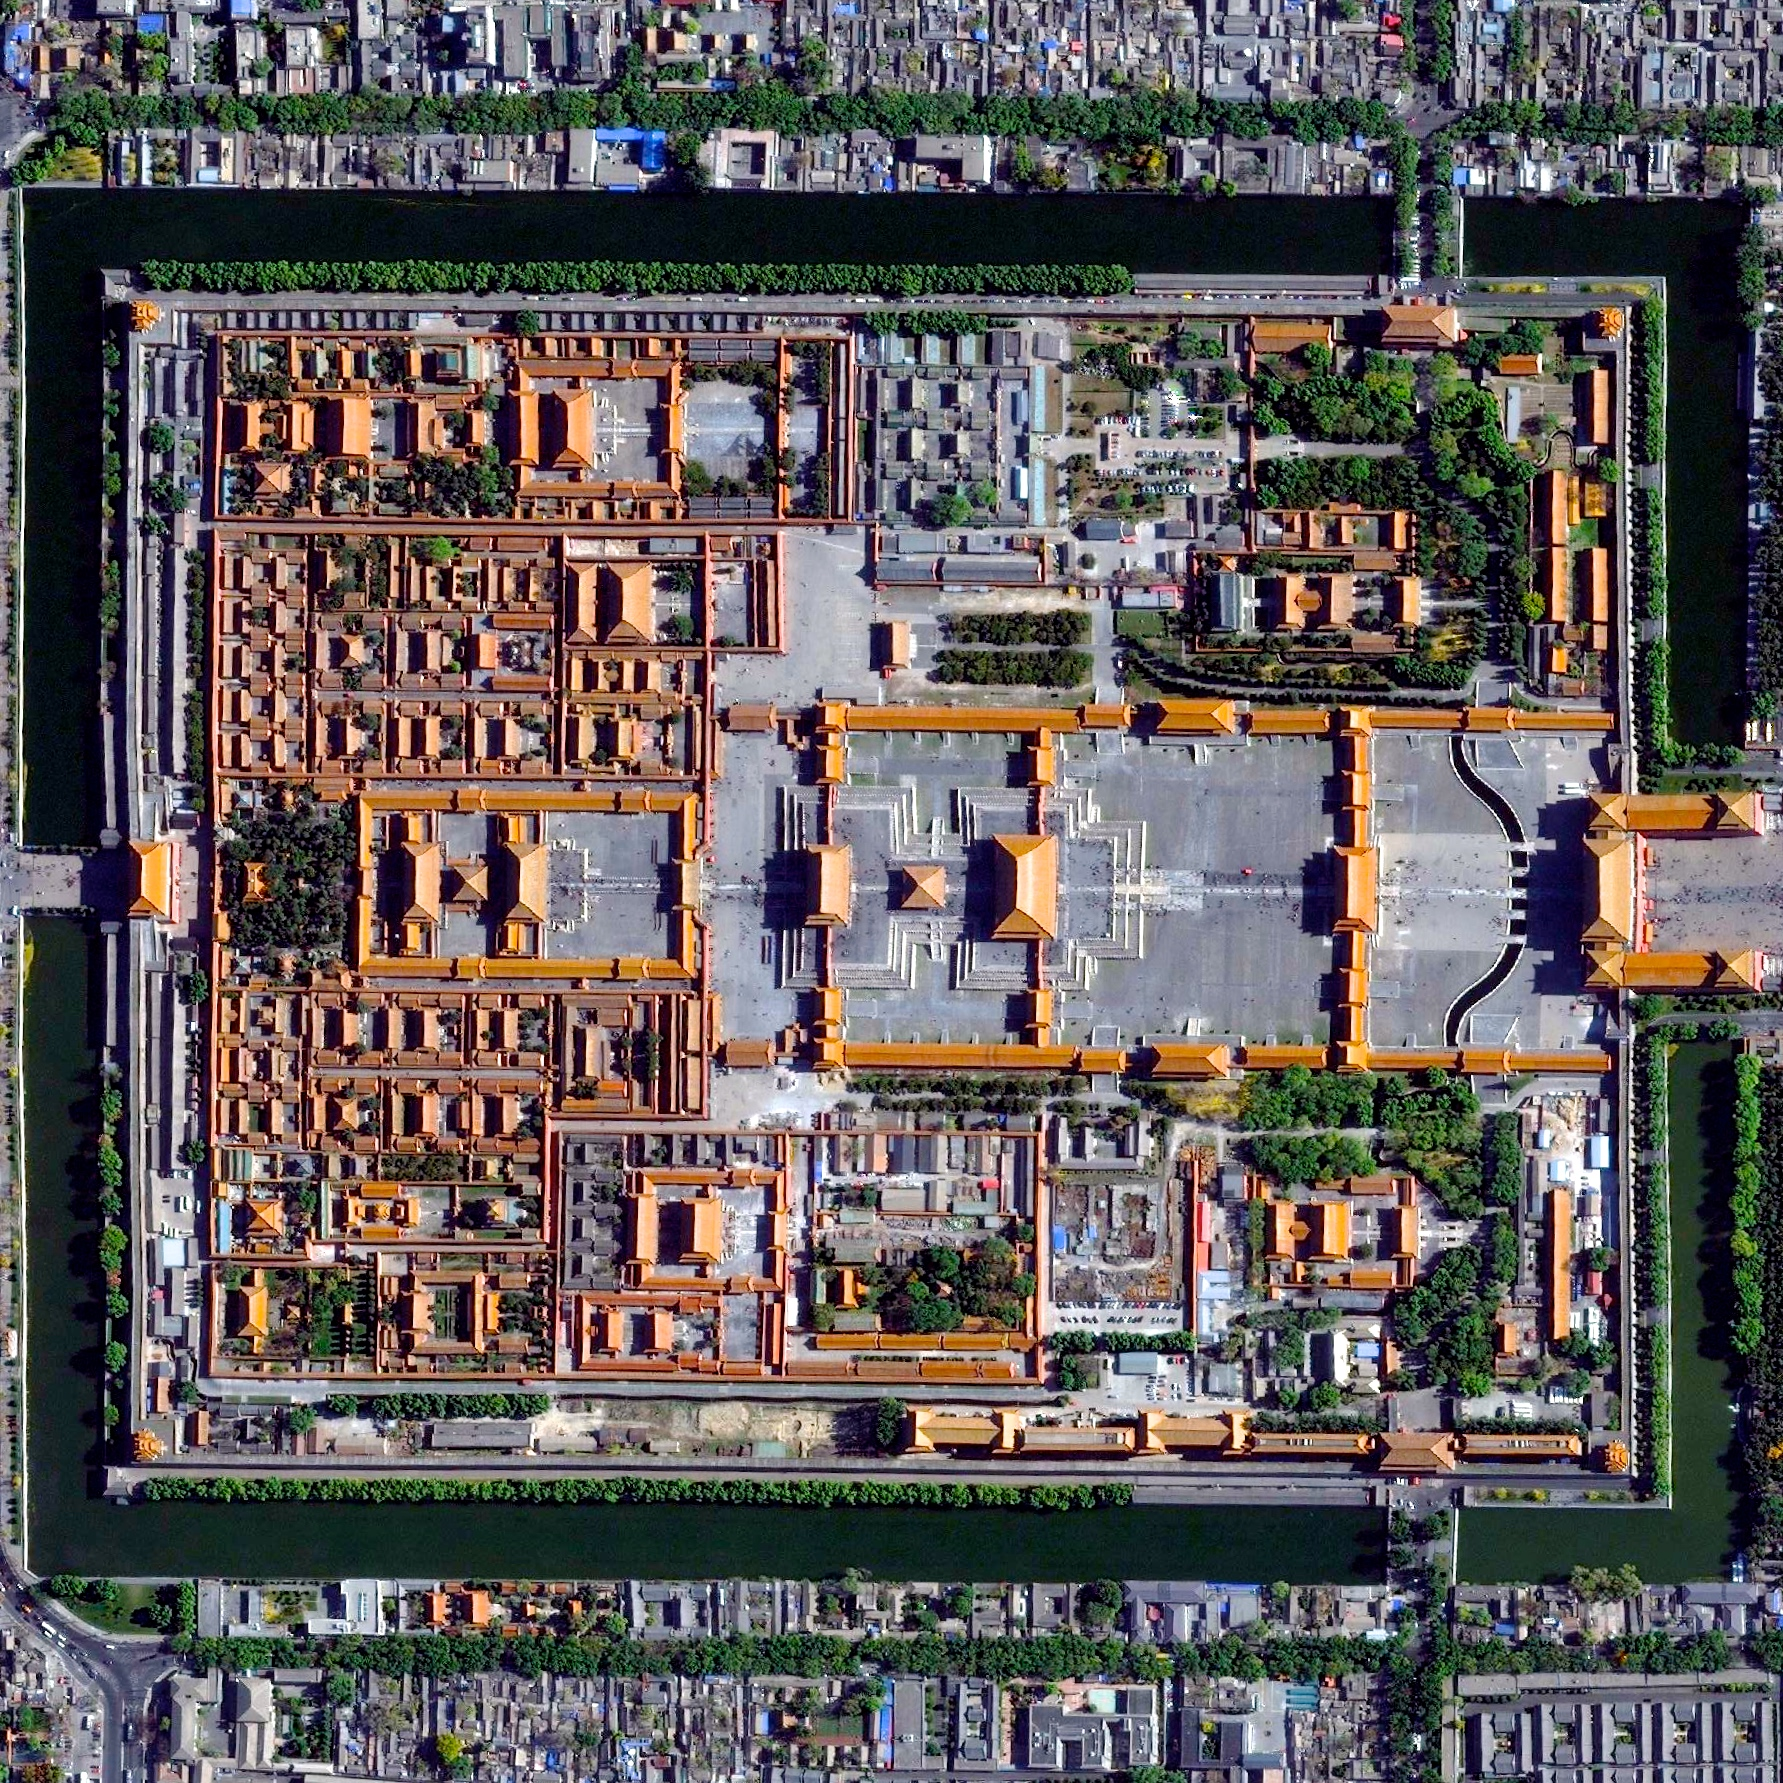 6/17/2015   The Forbidden City   Beijing, China  39°54′53″N 116°23′26″E     The Forbidden City in Beijing, China was built from 1406 until 1420 by more than one million workers. The palace complex, which contains 9,999 rooms, is surrounded by walls and a moat that are 26 feet high and 171 feet wide, respectively.